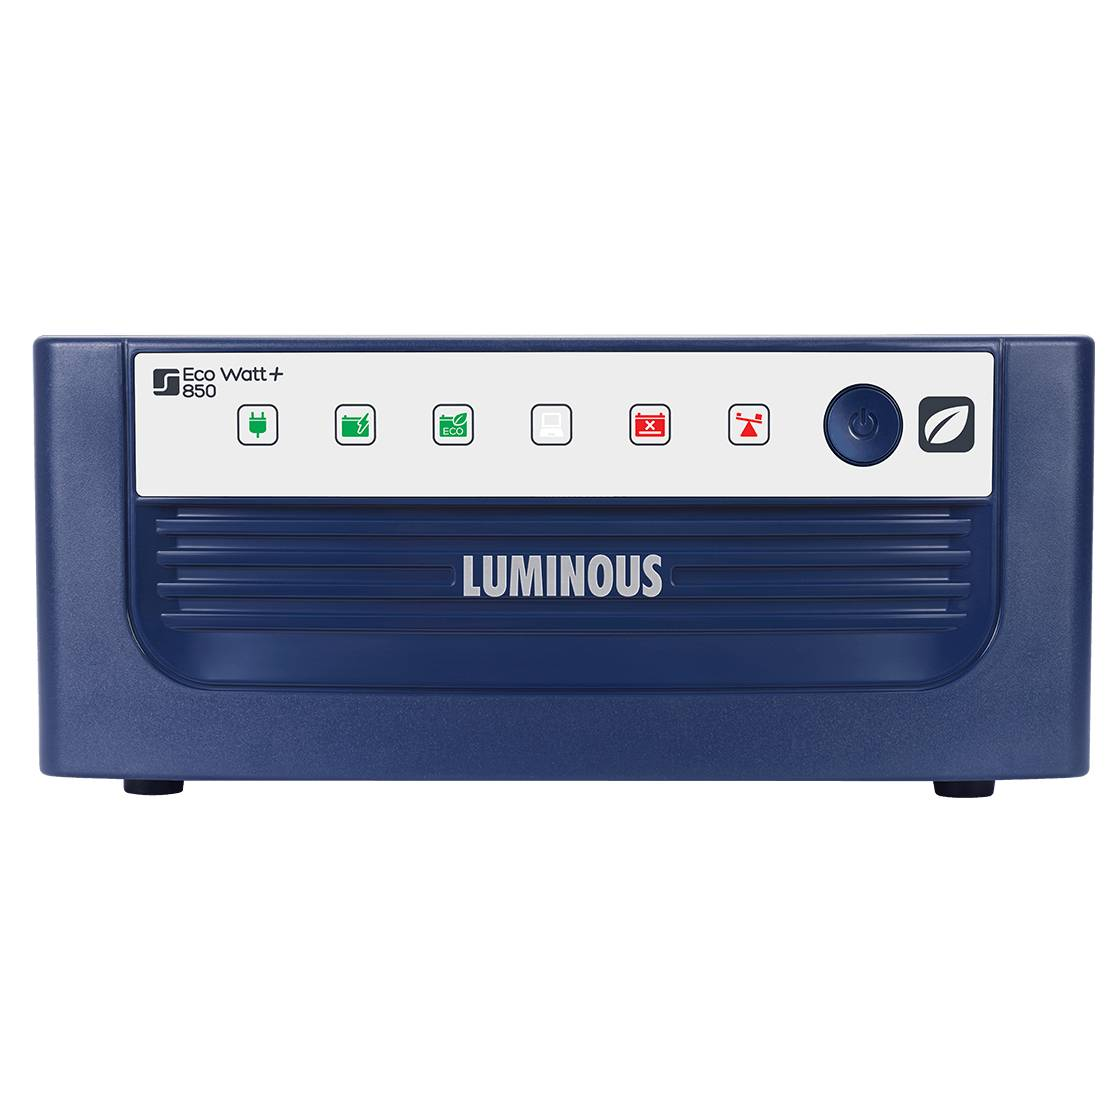 Luminous 850VA Eco Watt+ Inverter